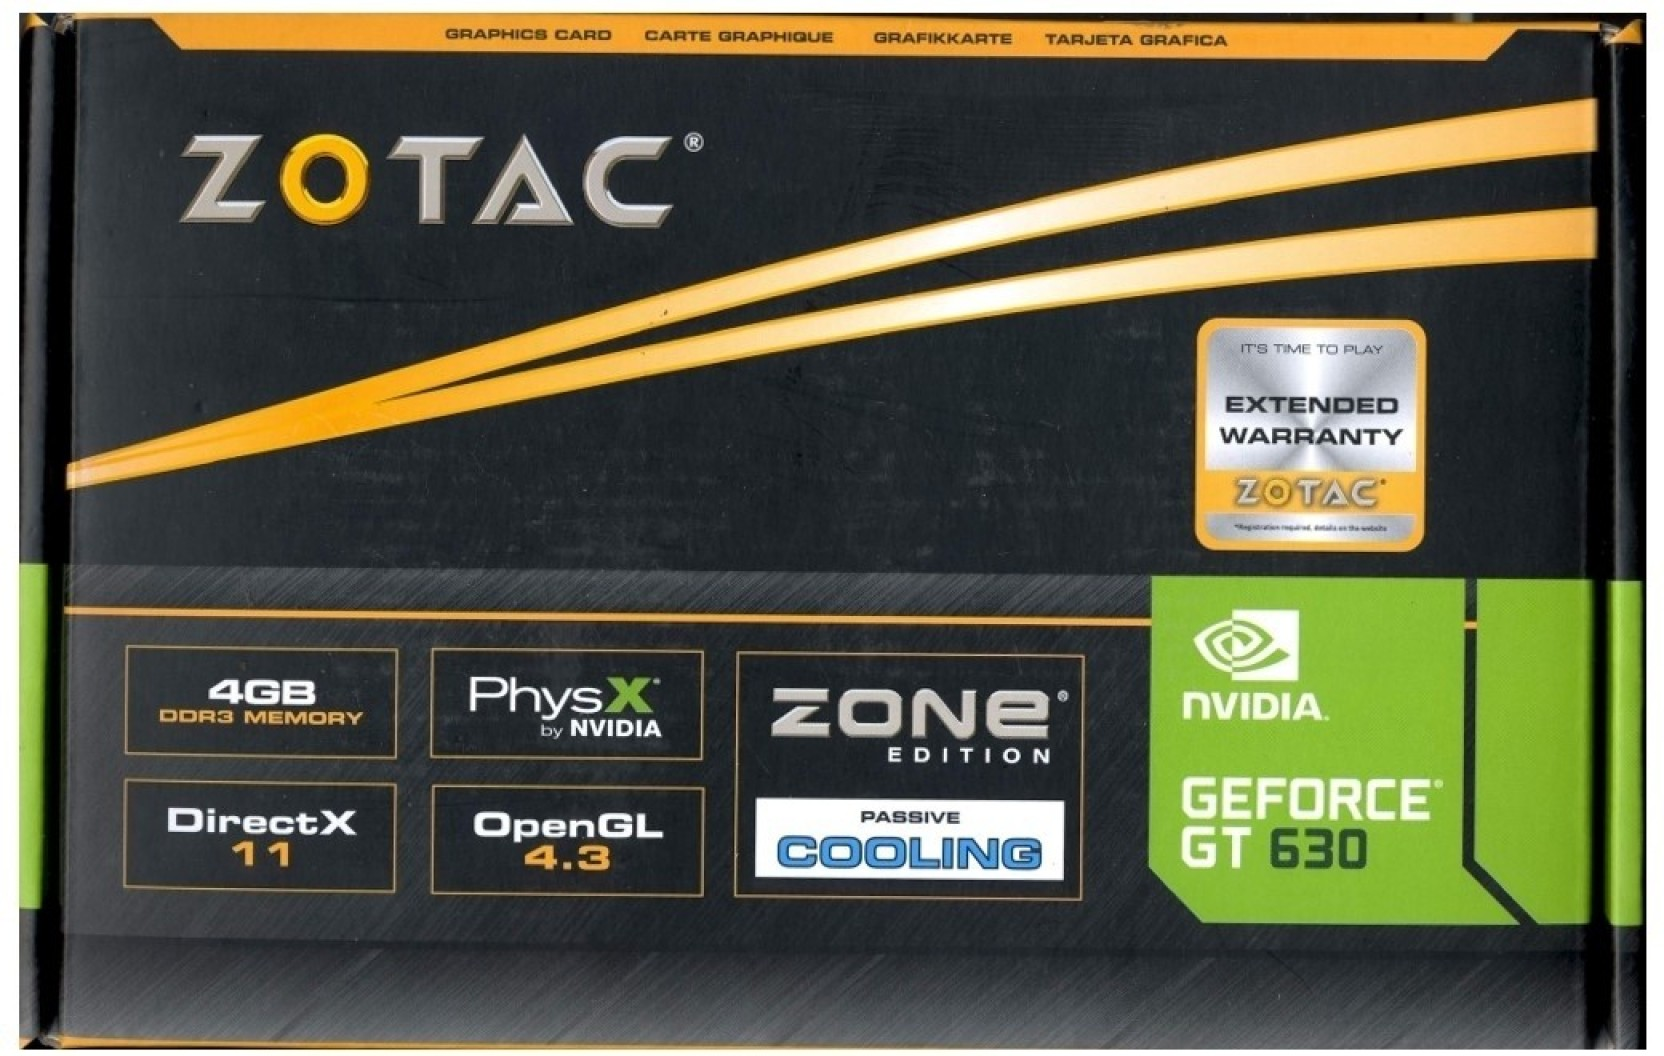 Zotac geforce gt-630 2gb ddr3 zone edition unboxing youtube.